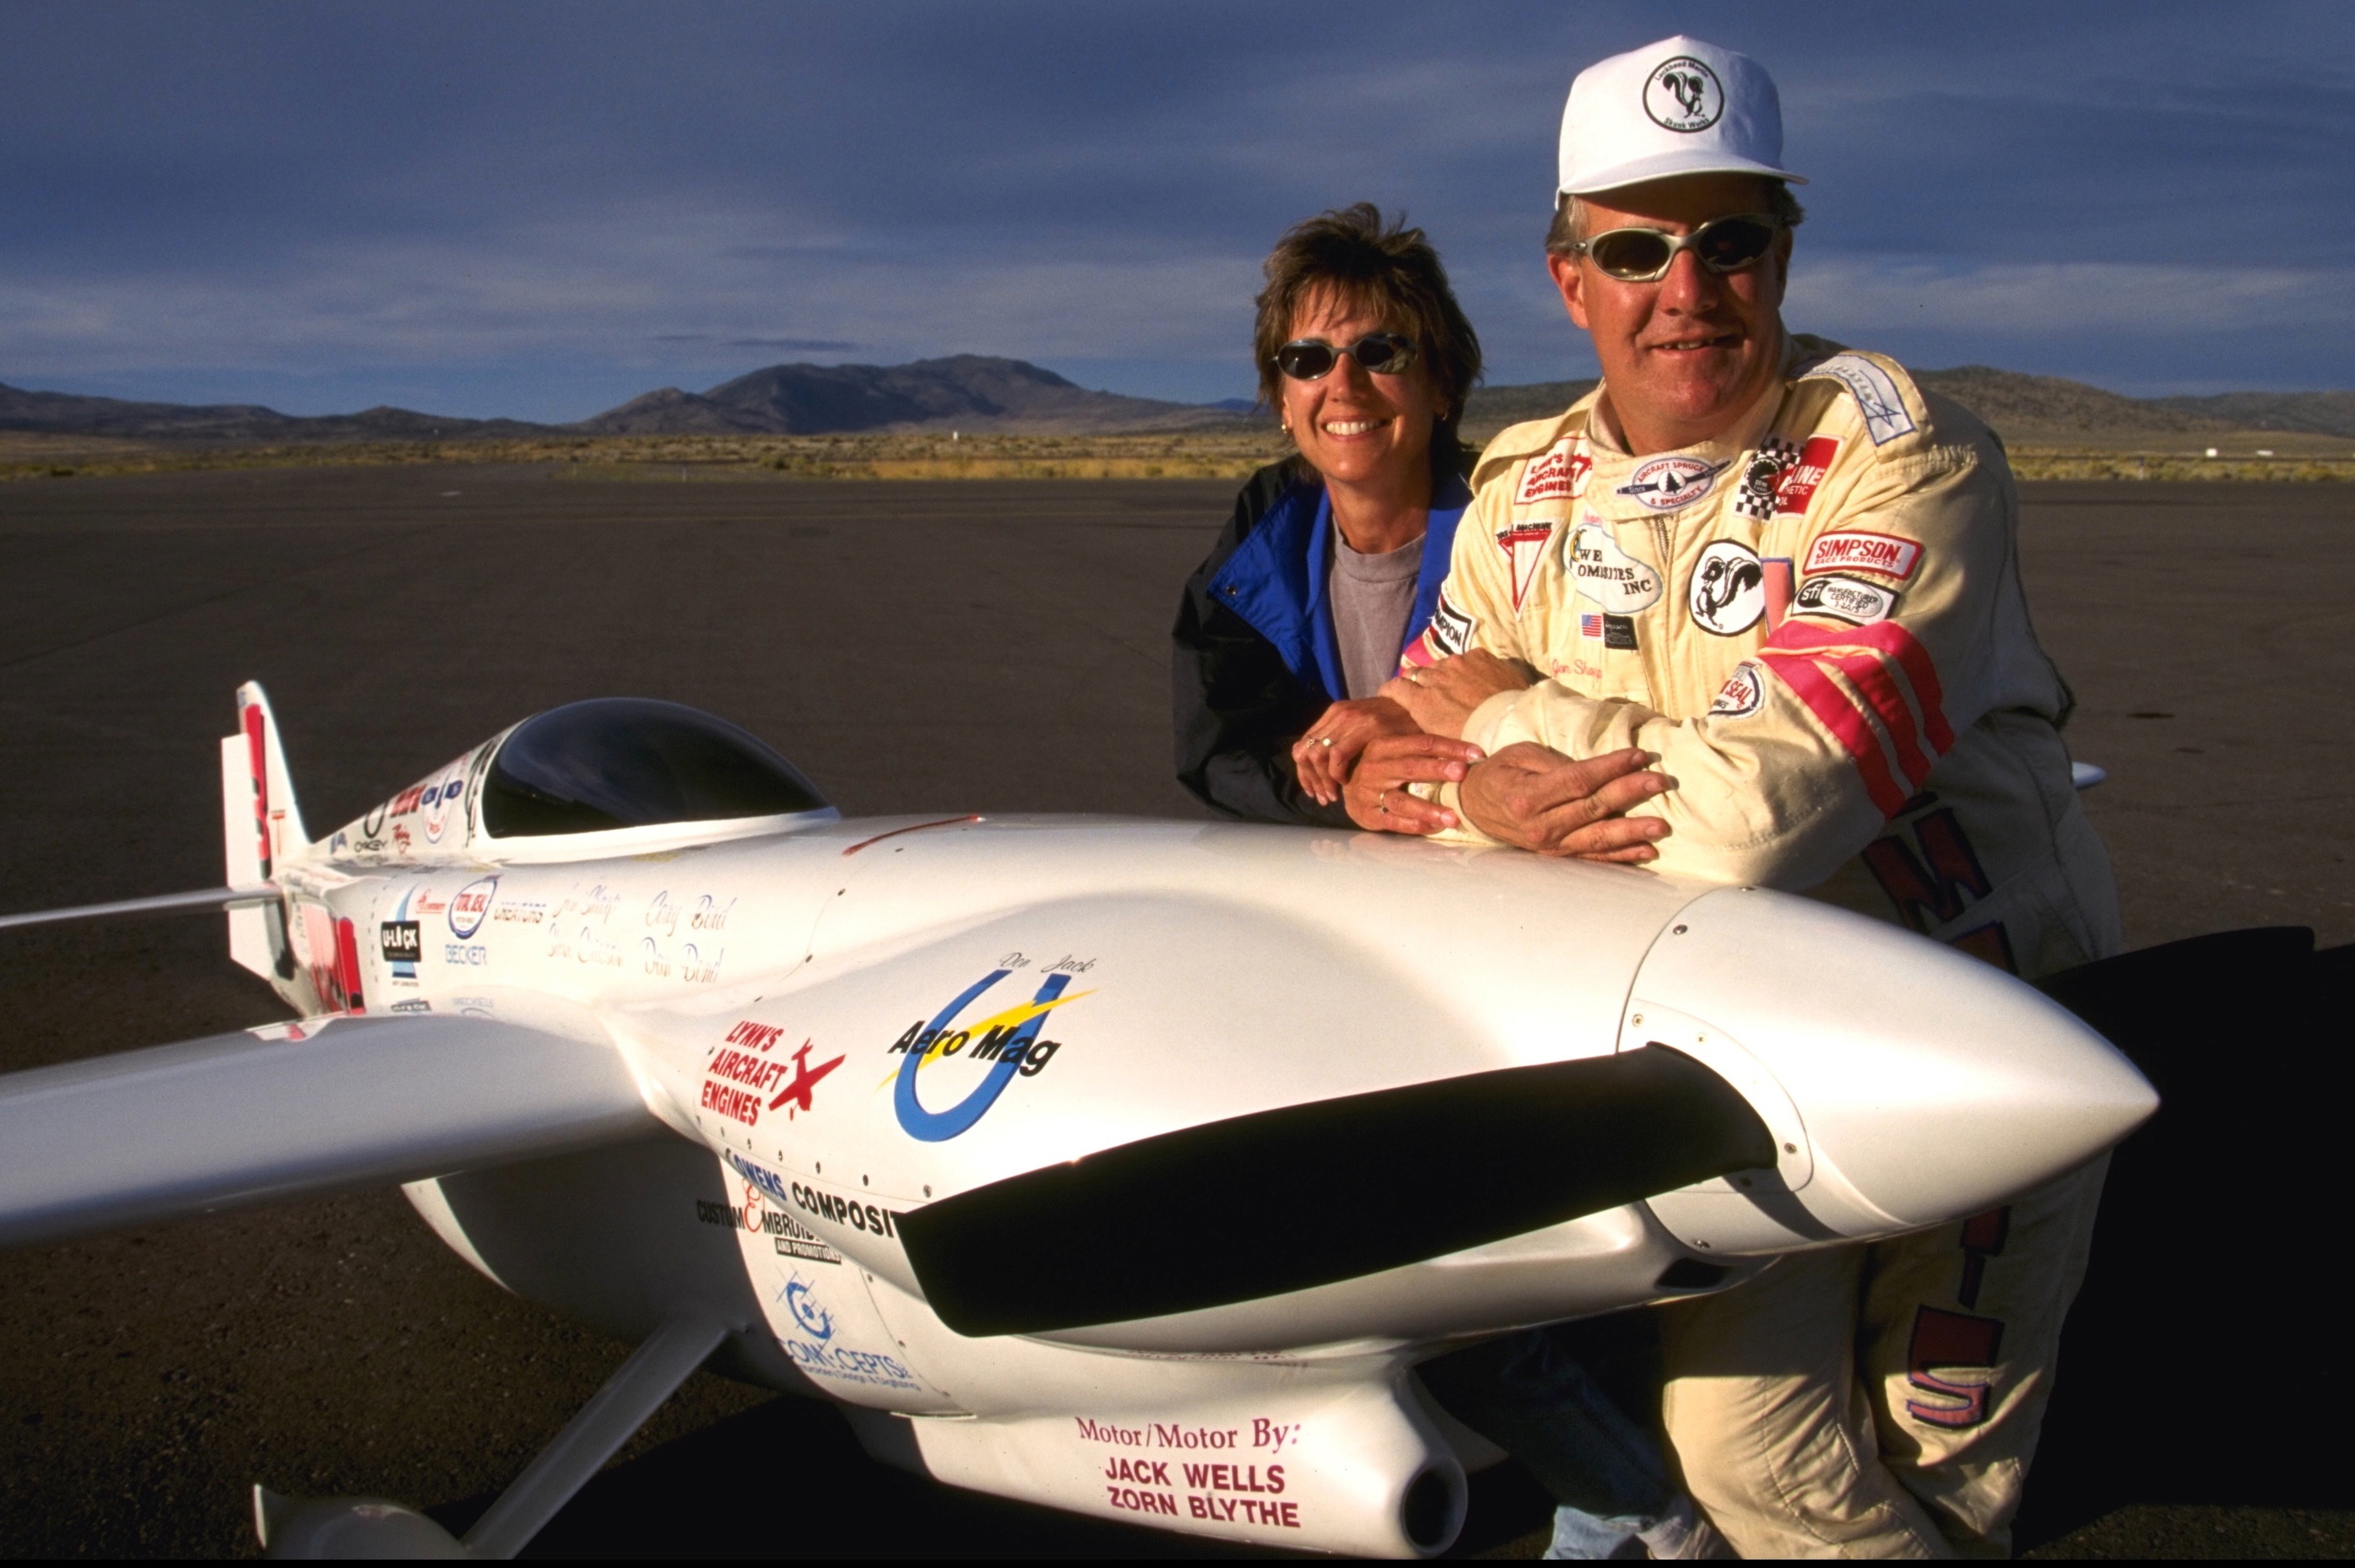 Jon and Patricia Sharp stand next to their plane, Nemesis.